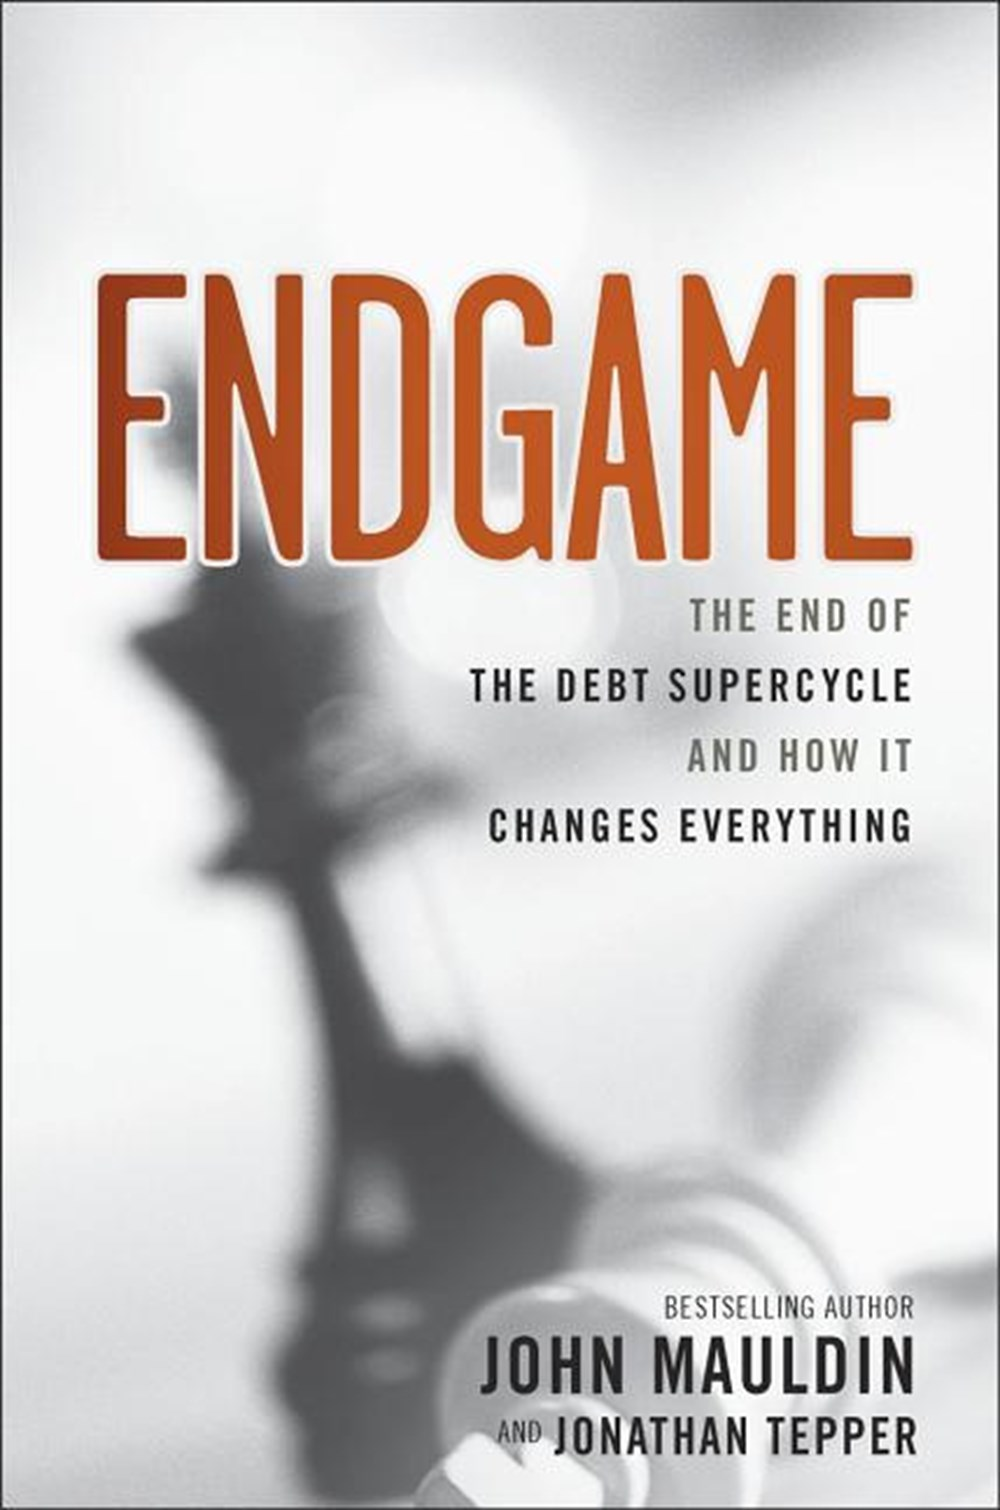 Endgame The End of the Debt Supercycle and How It Changes Everything